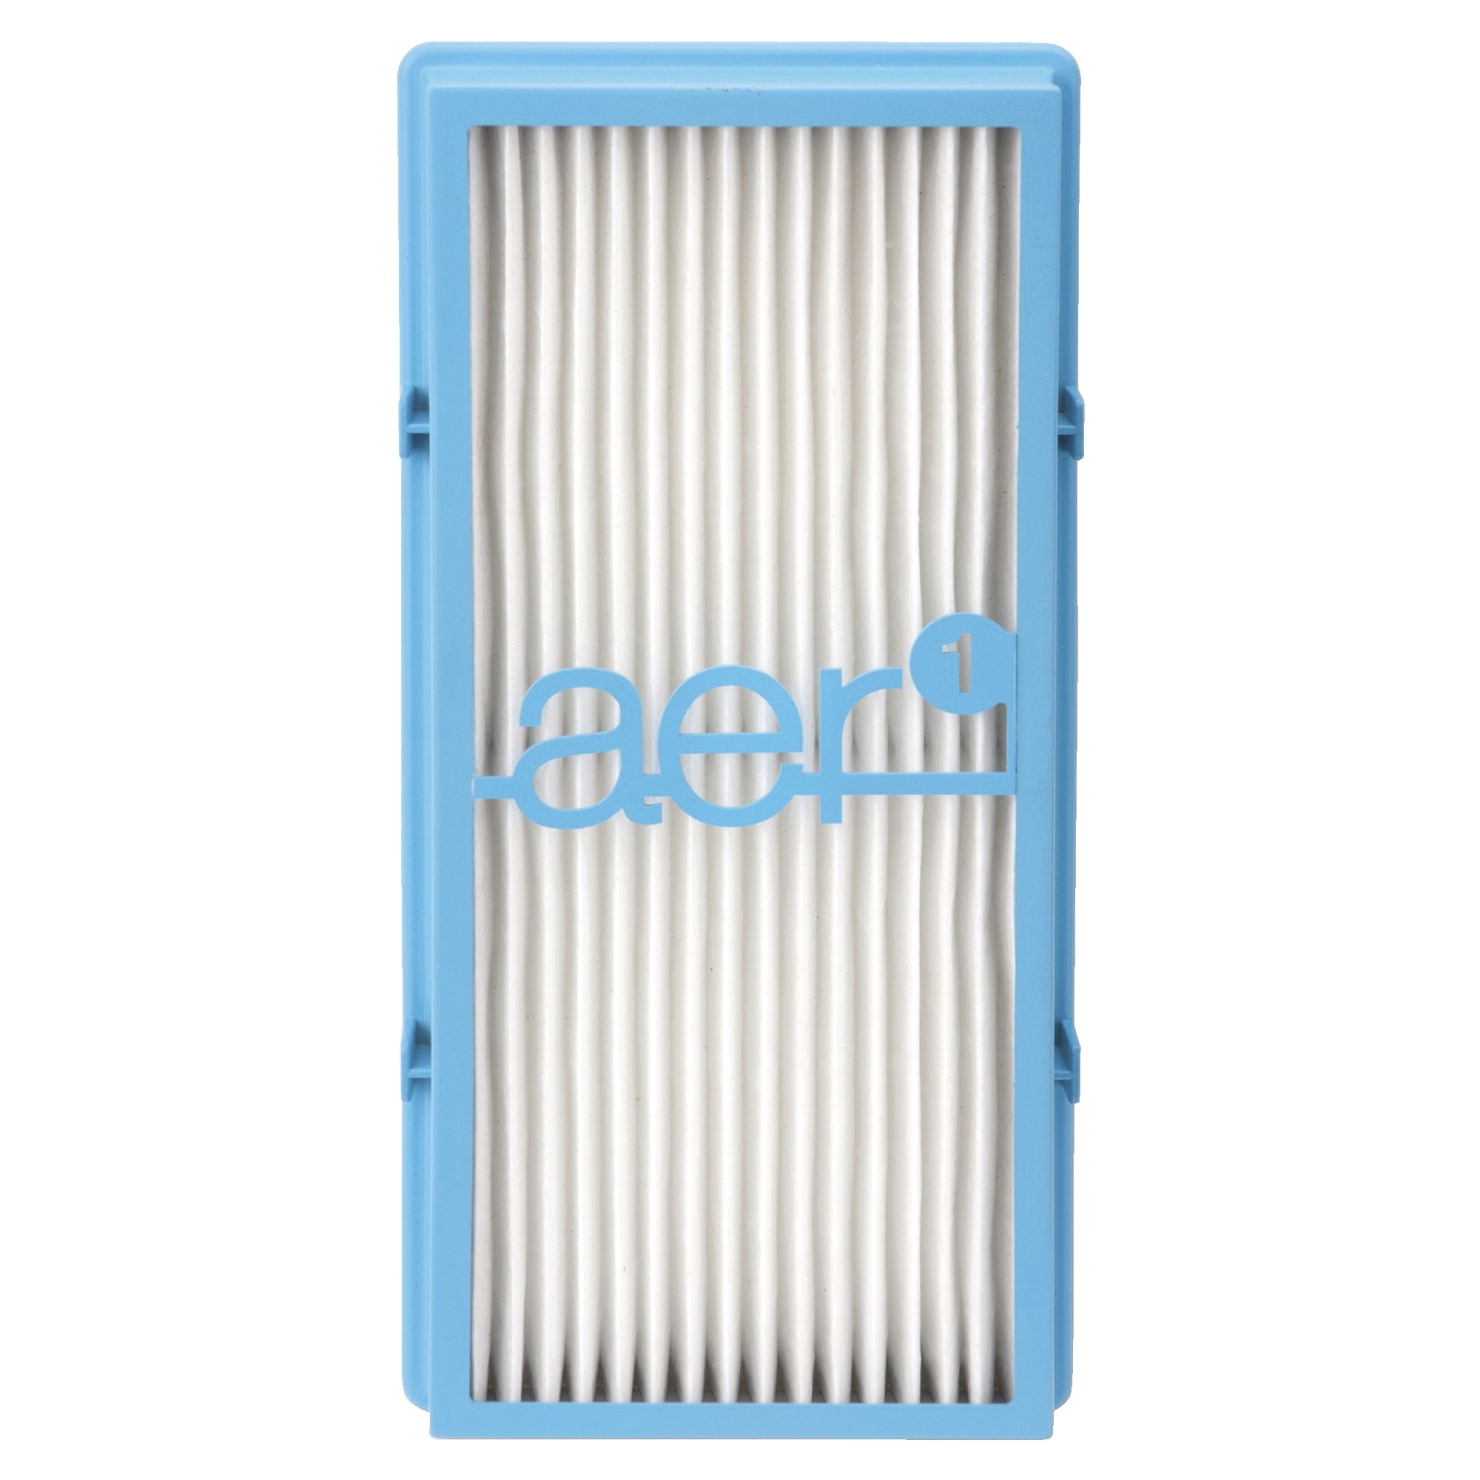 Holmes Aer1 Hepa Type Air Filter; 1-3/16 X 7-3/16 X 4 In; Blue/white - 1493709 - Facilities Management Facility Supplies Machines Appliances Kitchen Appliances 1493709